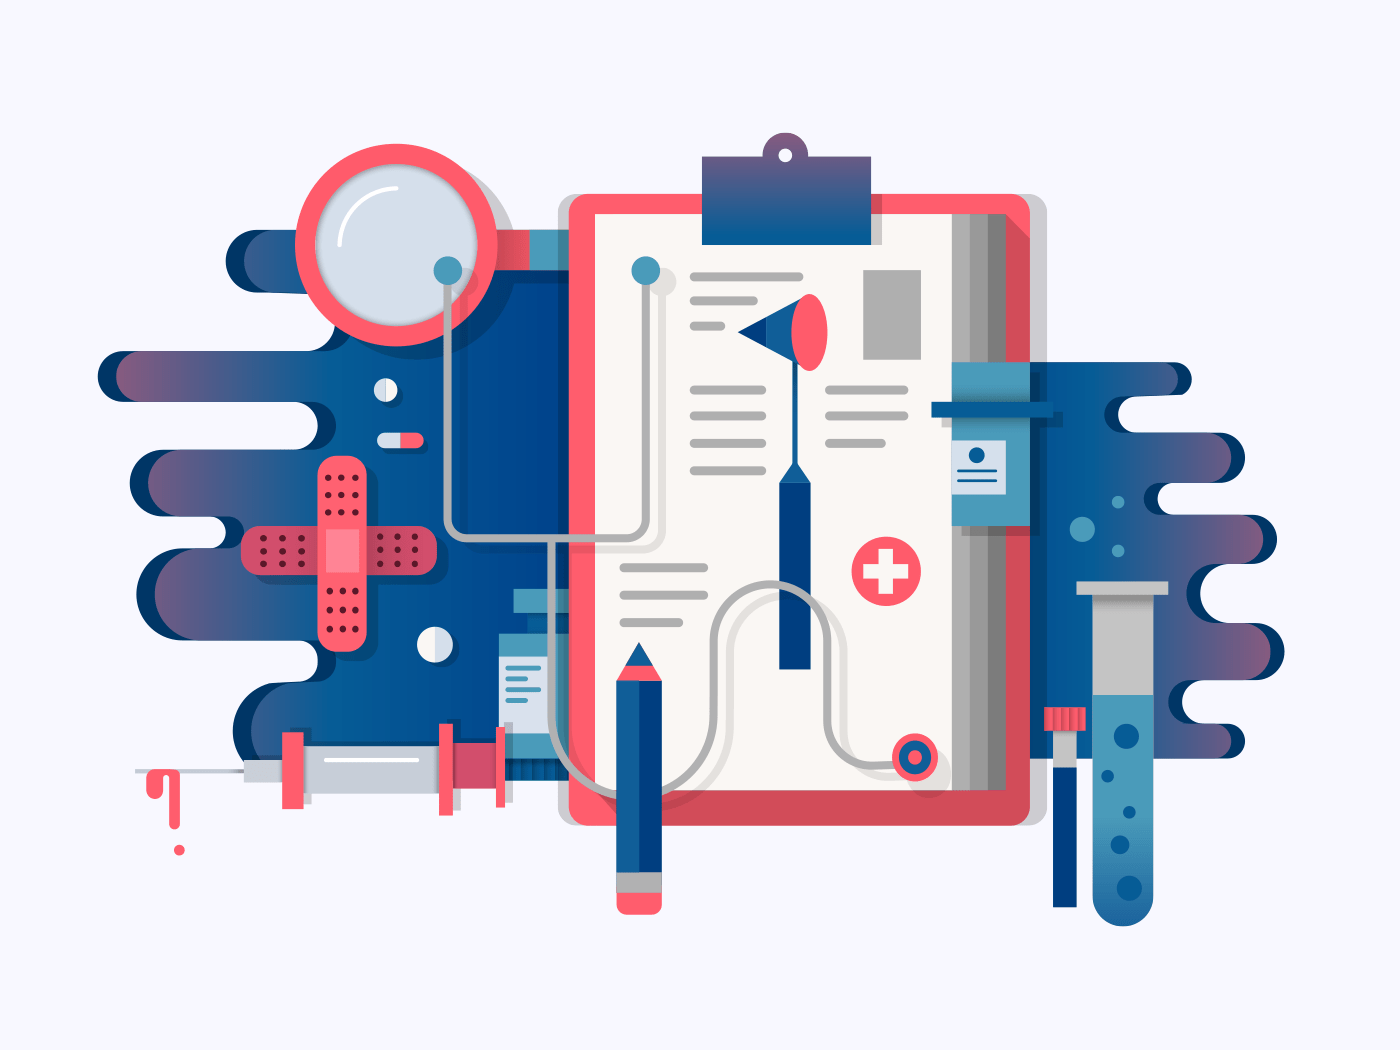 Doctor tools illustration